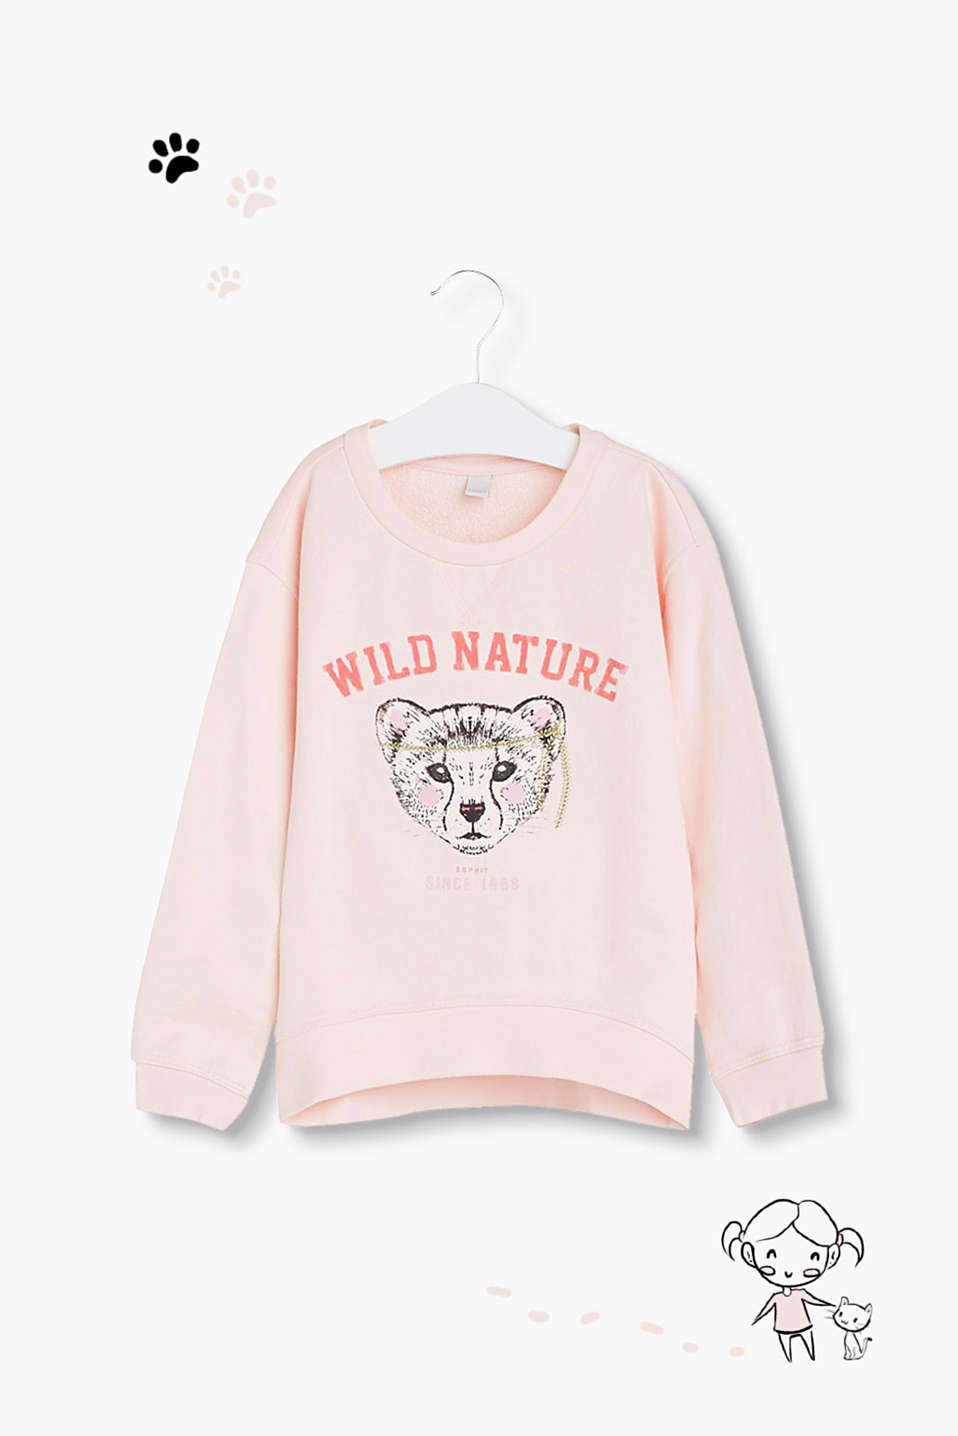 WILD NATURE! Sweatshirt aus Baumwoll-Mix